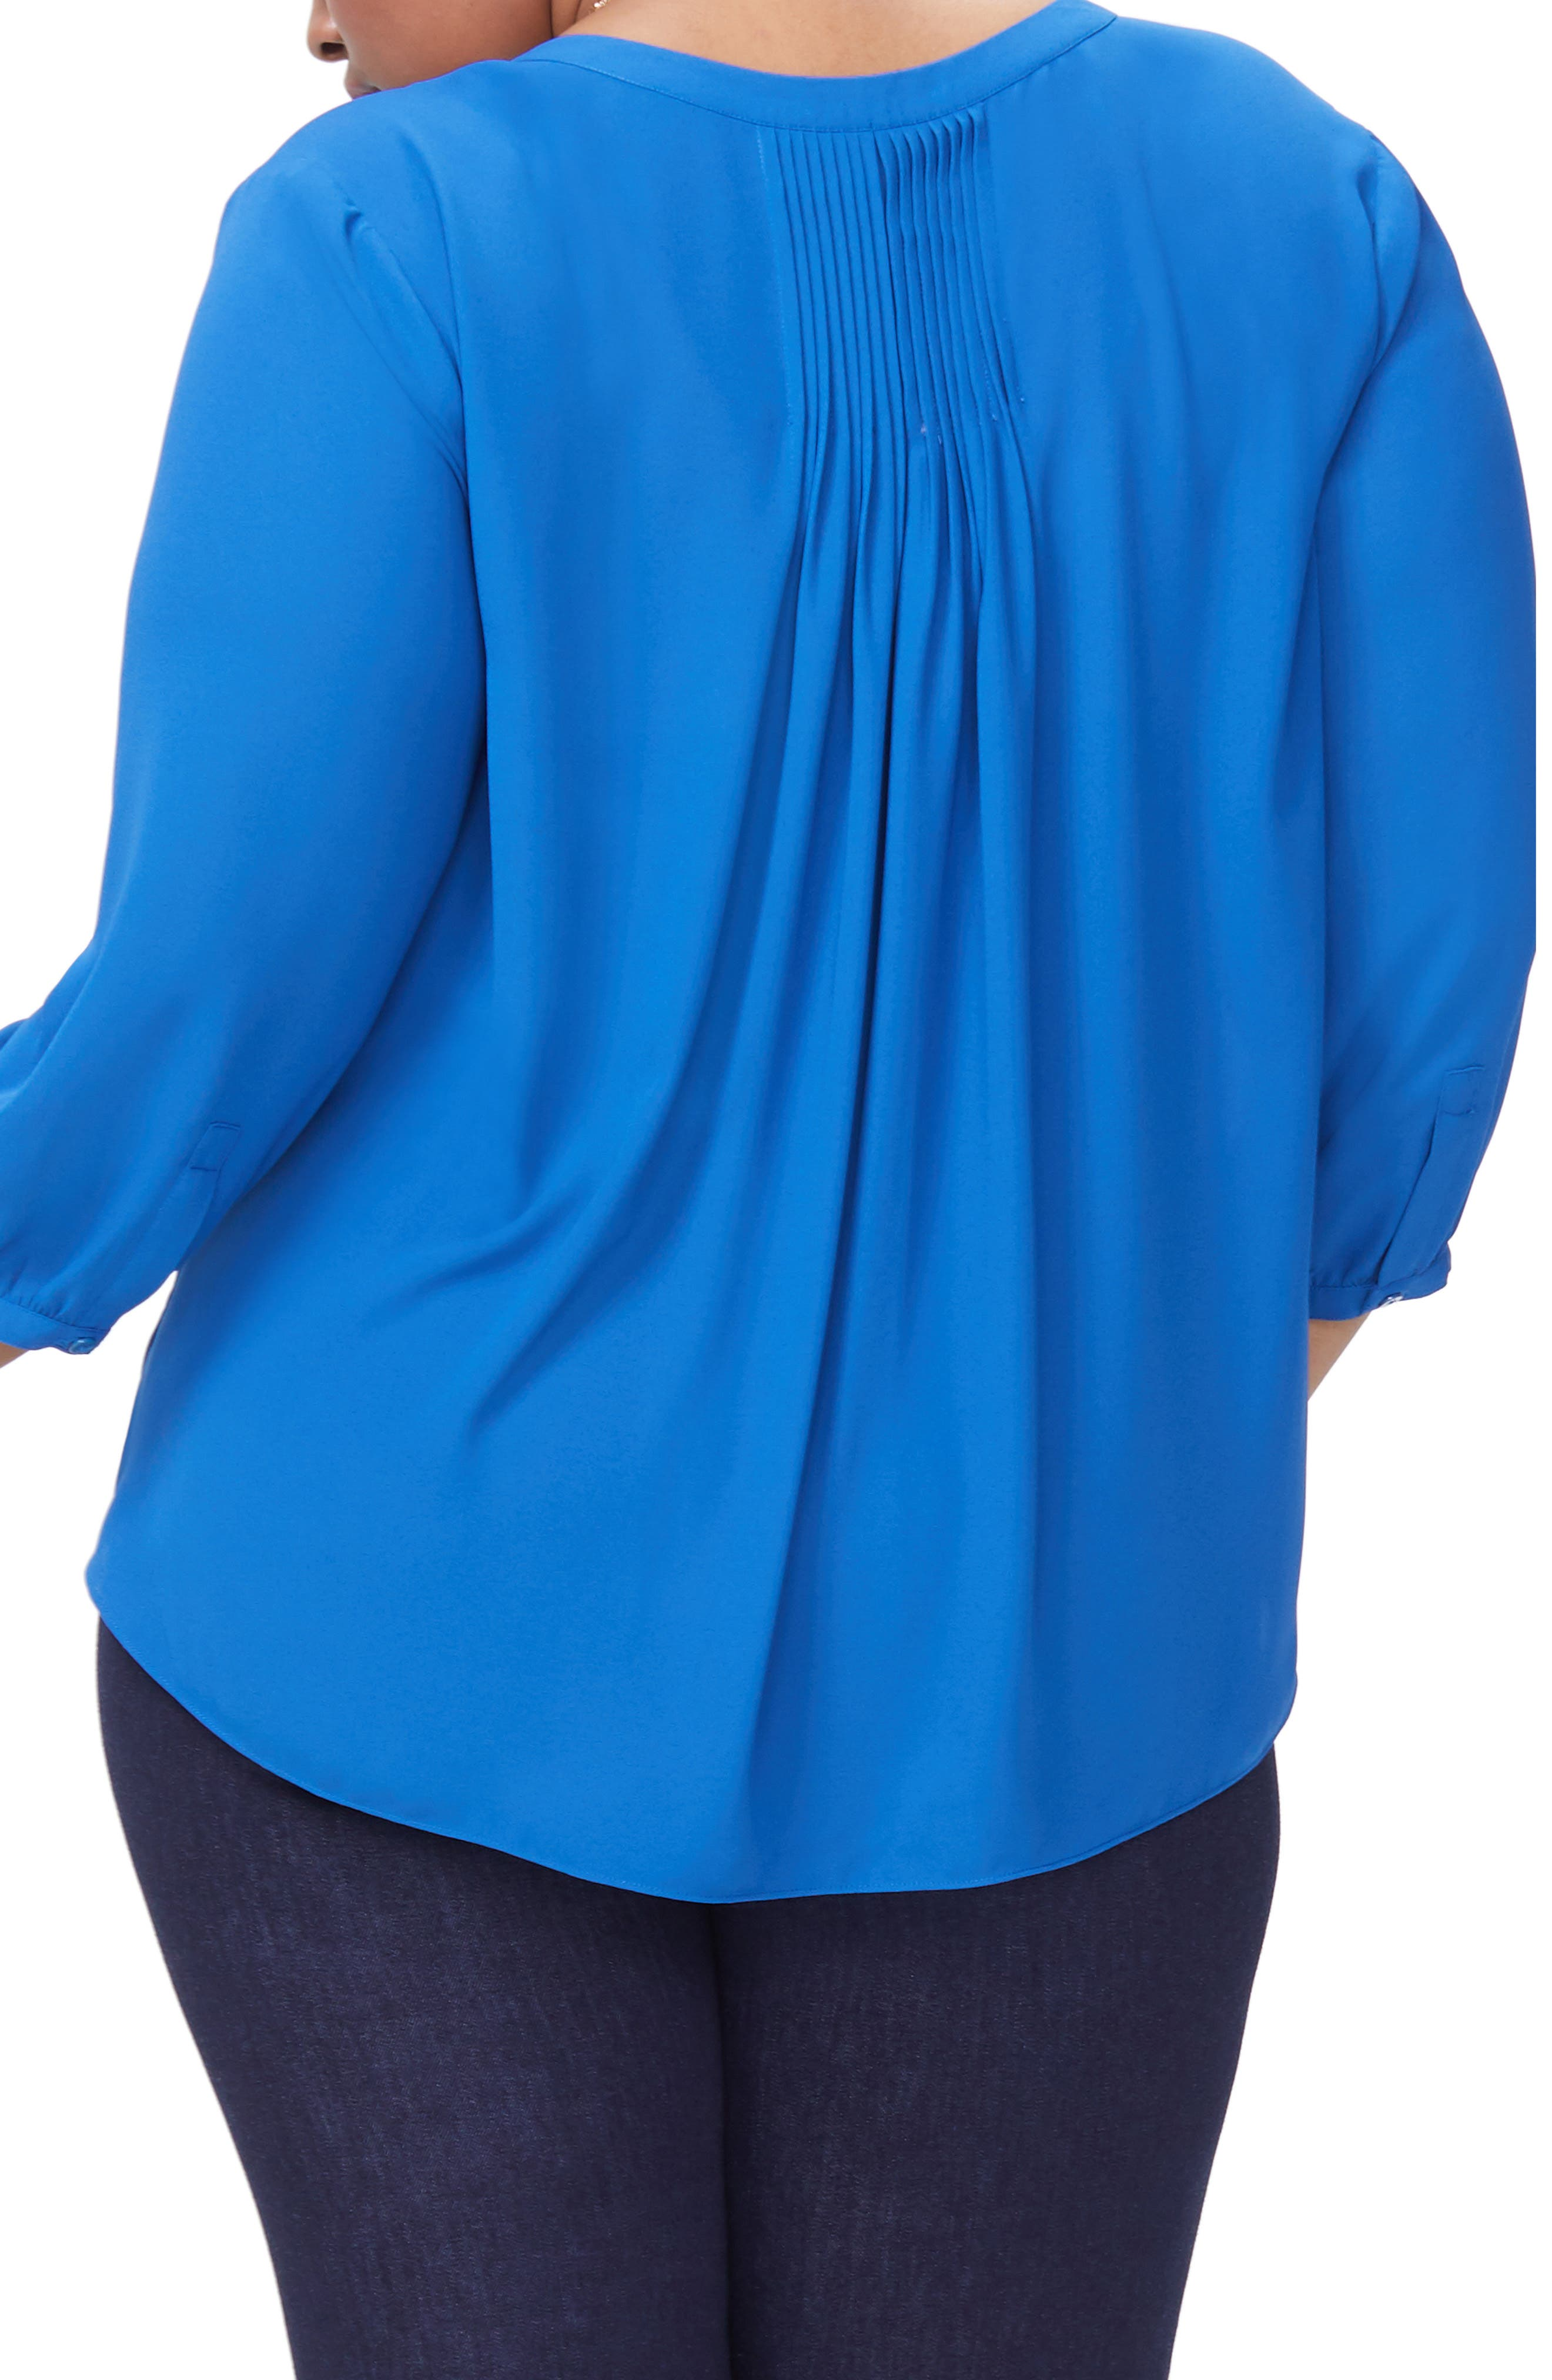 Blouse,                             Alternate thumbnail 2, color,                             ALPINE LAKE